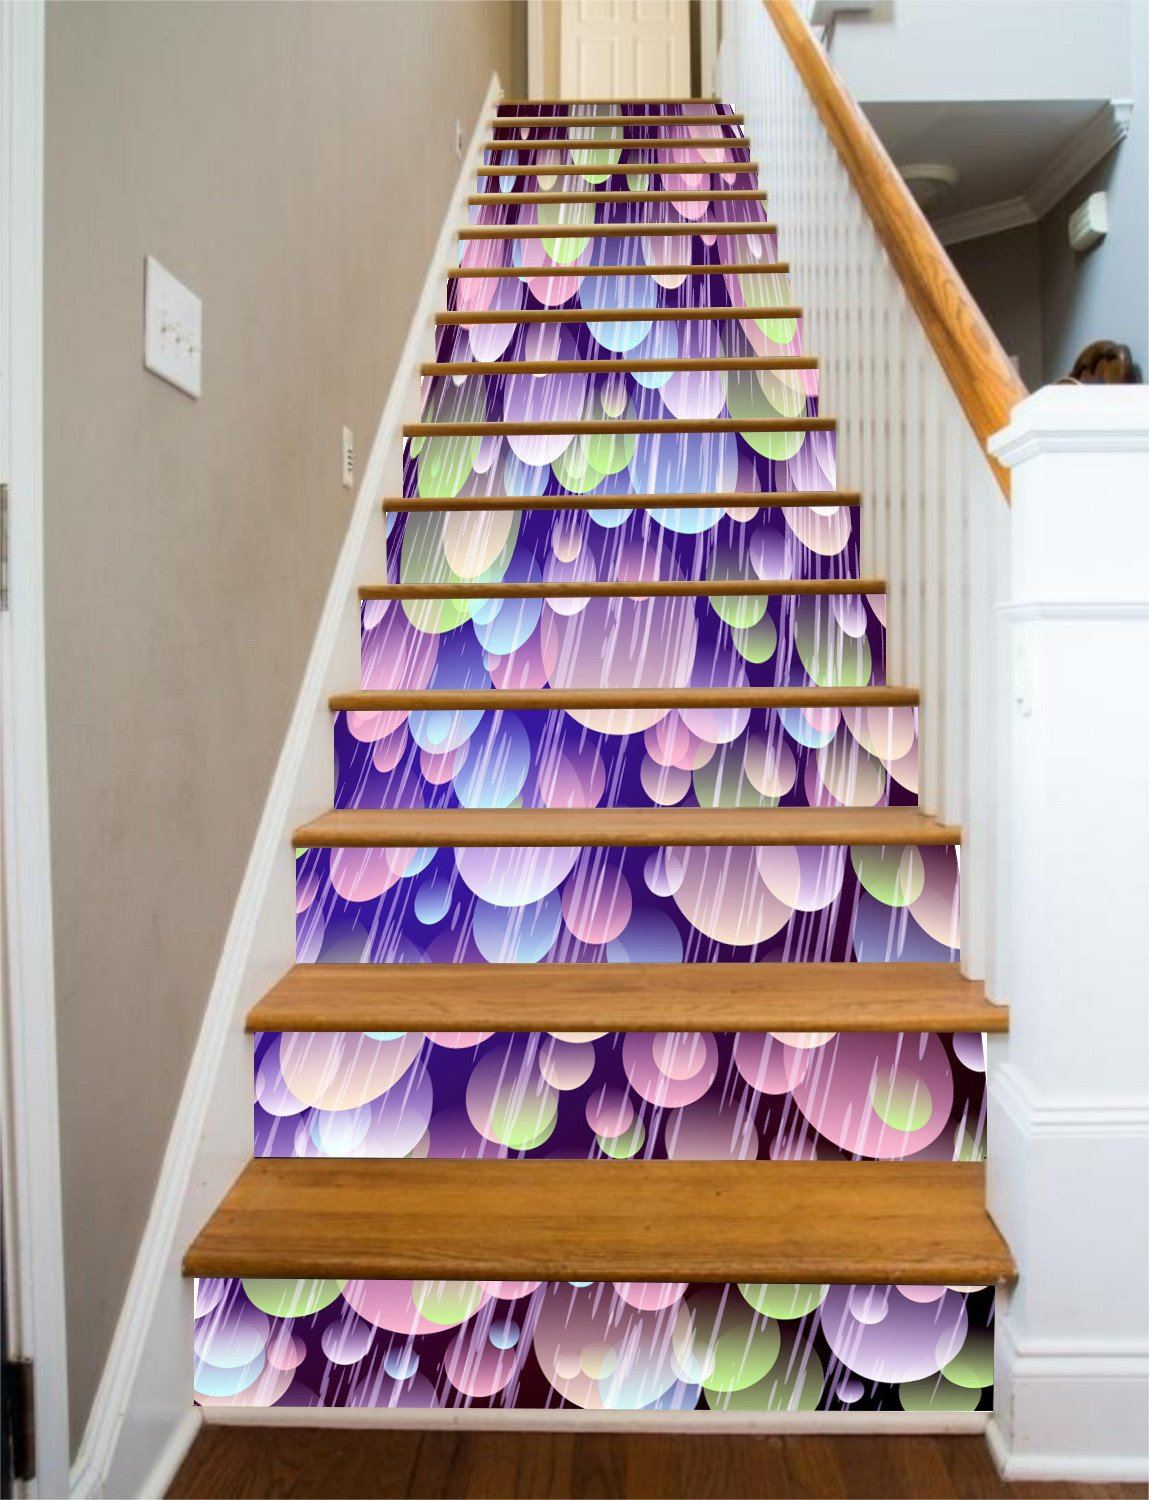 3D Colorful Patterns 7 Stair Risers